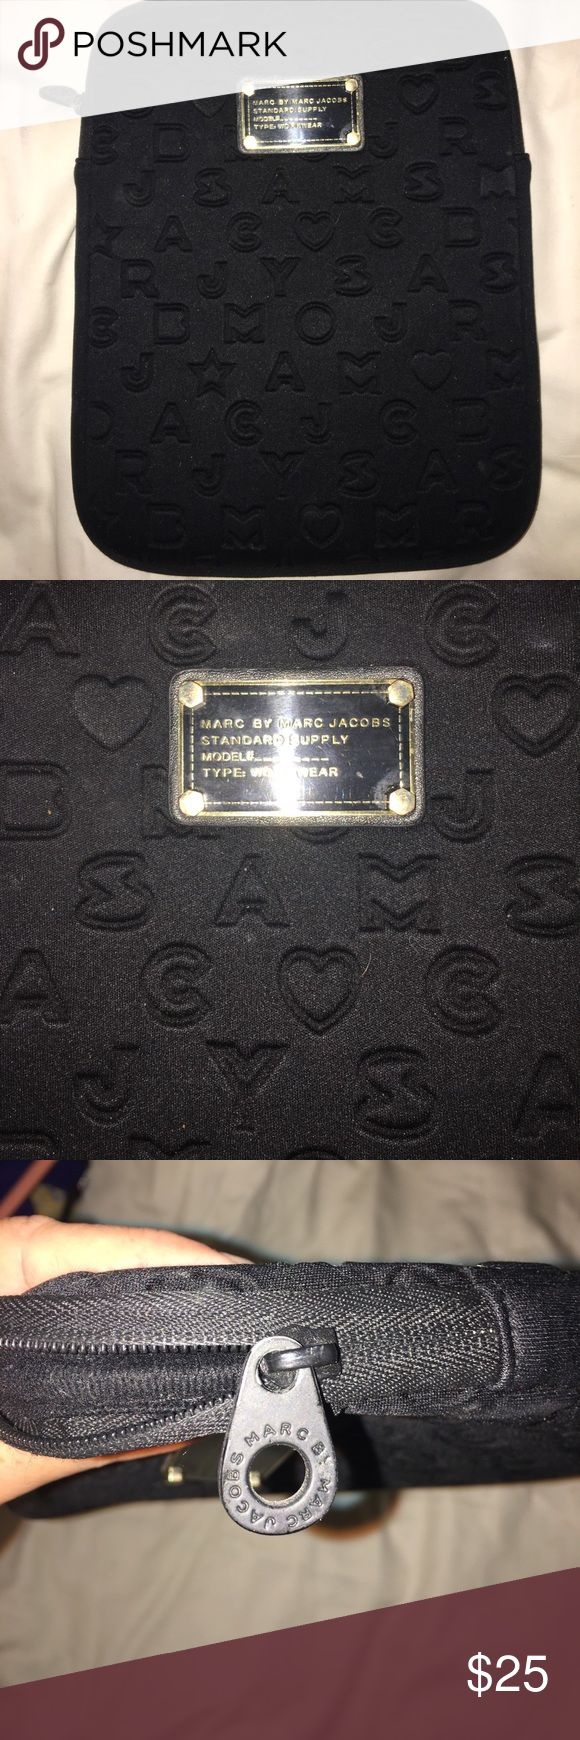 "Marc Jacobs black iPad case Black Marc by Marc Jacobs protective alphabet and hearts iPad case. Approximately 10.5""x 8.5"". Made for larger size iPad but mini fits just fine. Also cute for jewelry, etc. Marc By Marc Jacobs Accessories Tablet Cases"